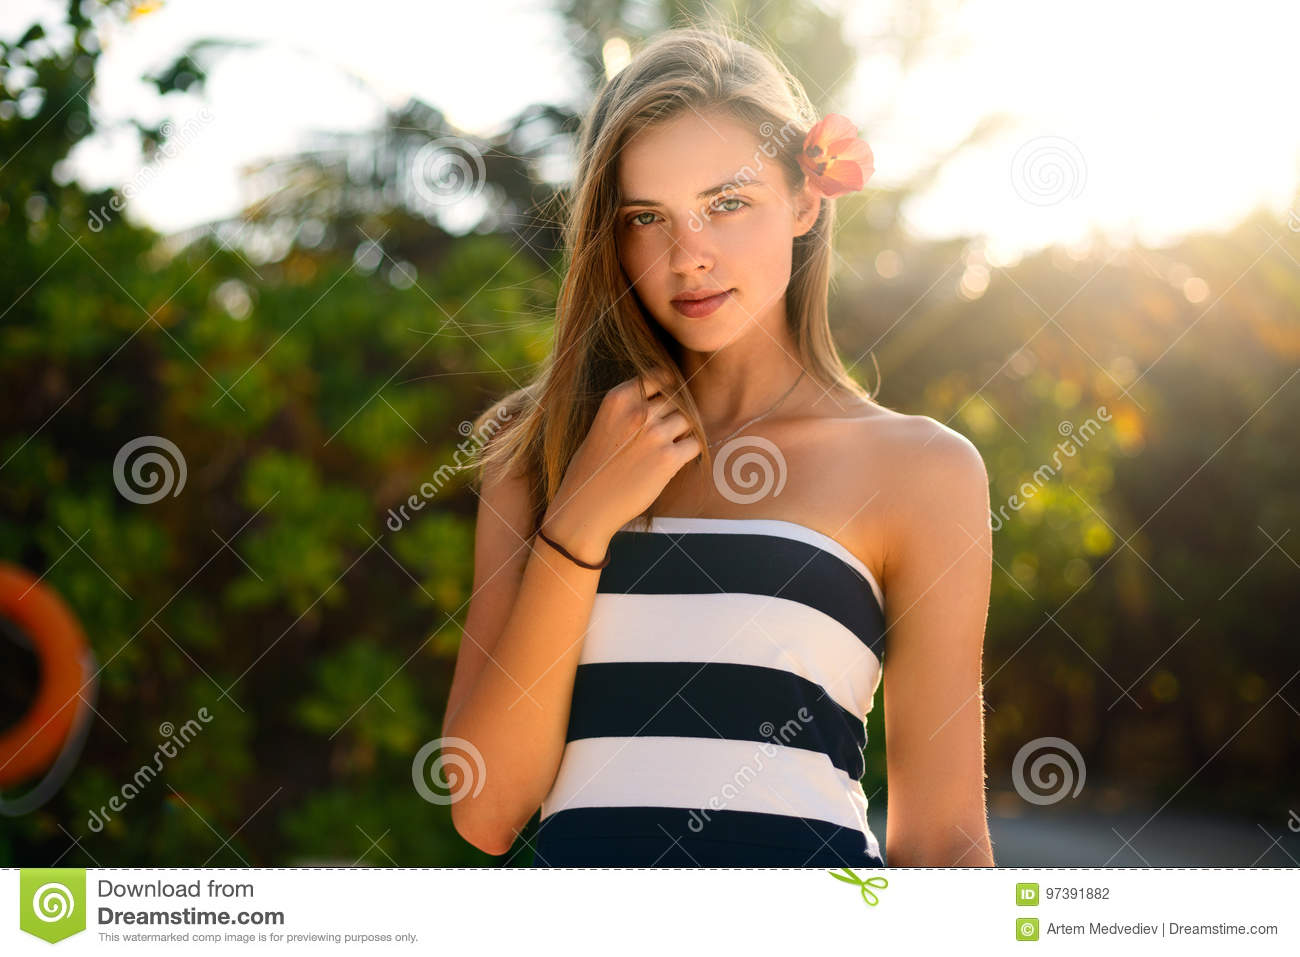 Spa wellness beach beauty woman relaxing andlooking at camera on beach. Beautiful serene and peaceful young female model